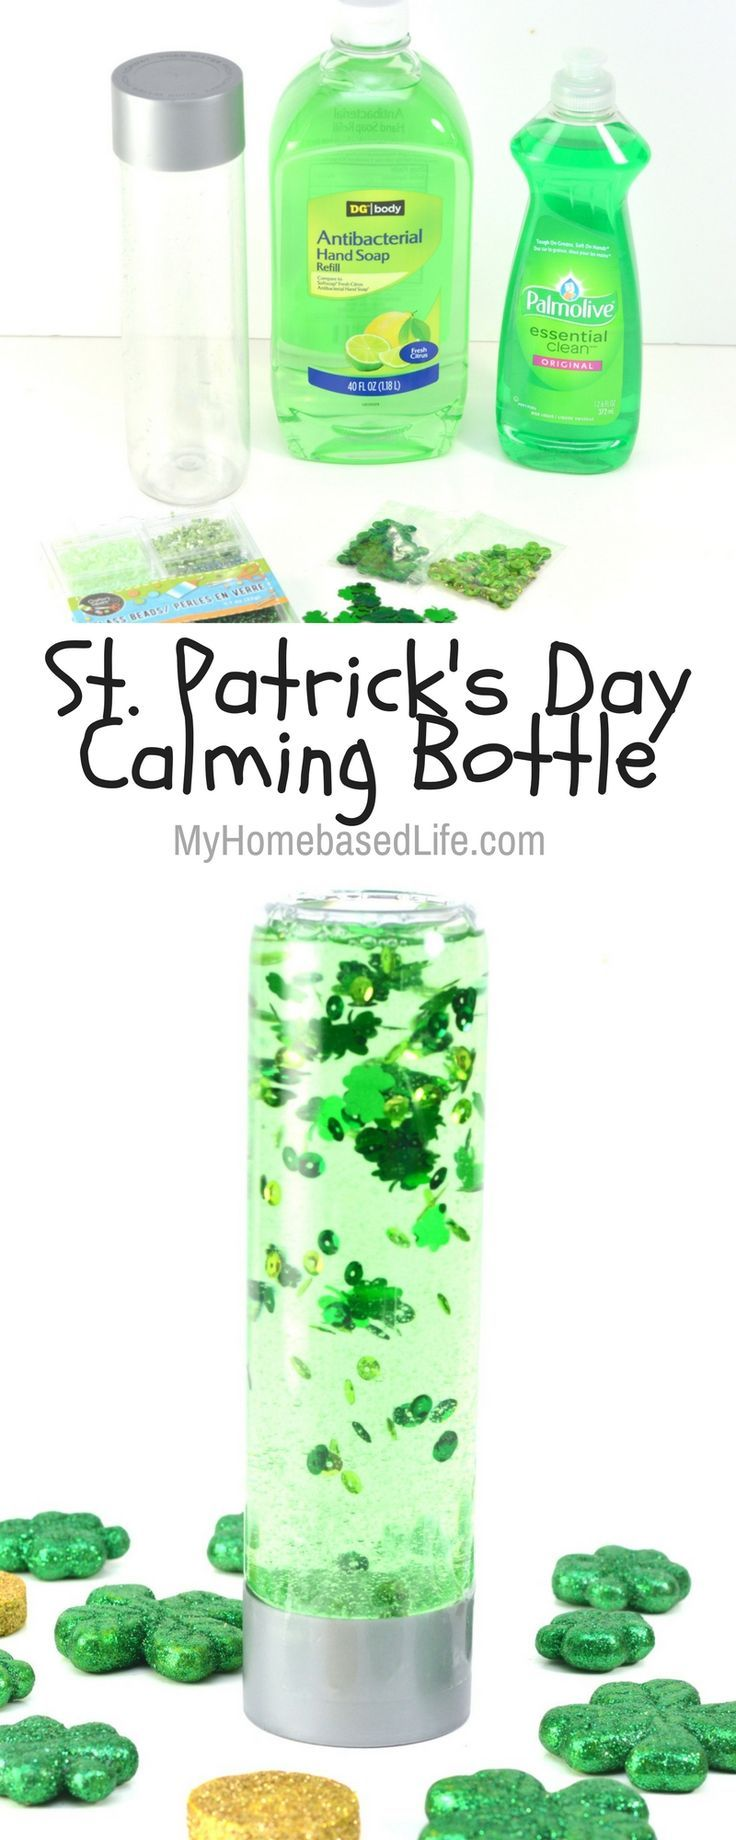 A super simple St. Patrick's Day Calming Bottle for your kids to make this year. Get creative and customize it however you'd like | Sensory Activity | Calming Bottle | St. Patrick's Day Crafts for kids | St Patricks Day | Crafts for kids | Kids Activities | Simple Crafts for Kids | #sensory #stparticksday #craftsforkids via @myhomebasedlife